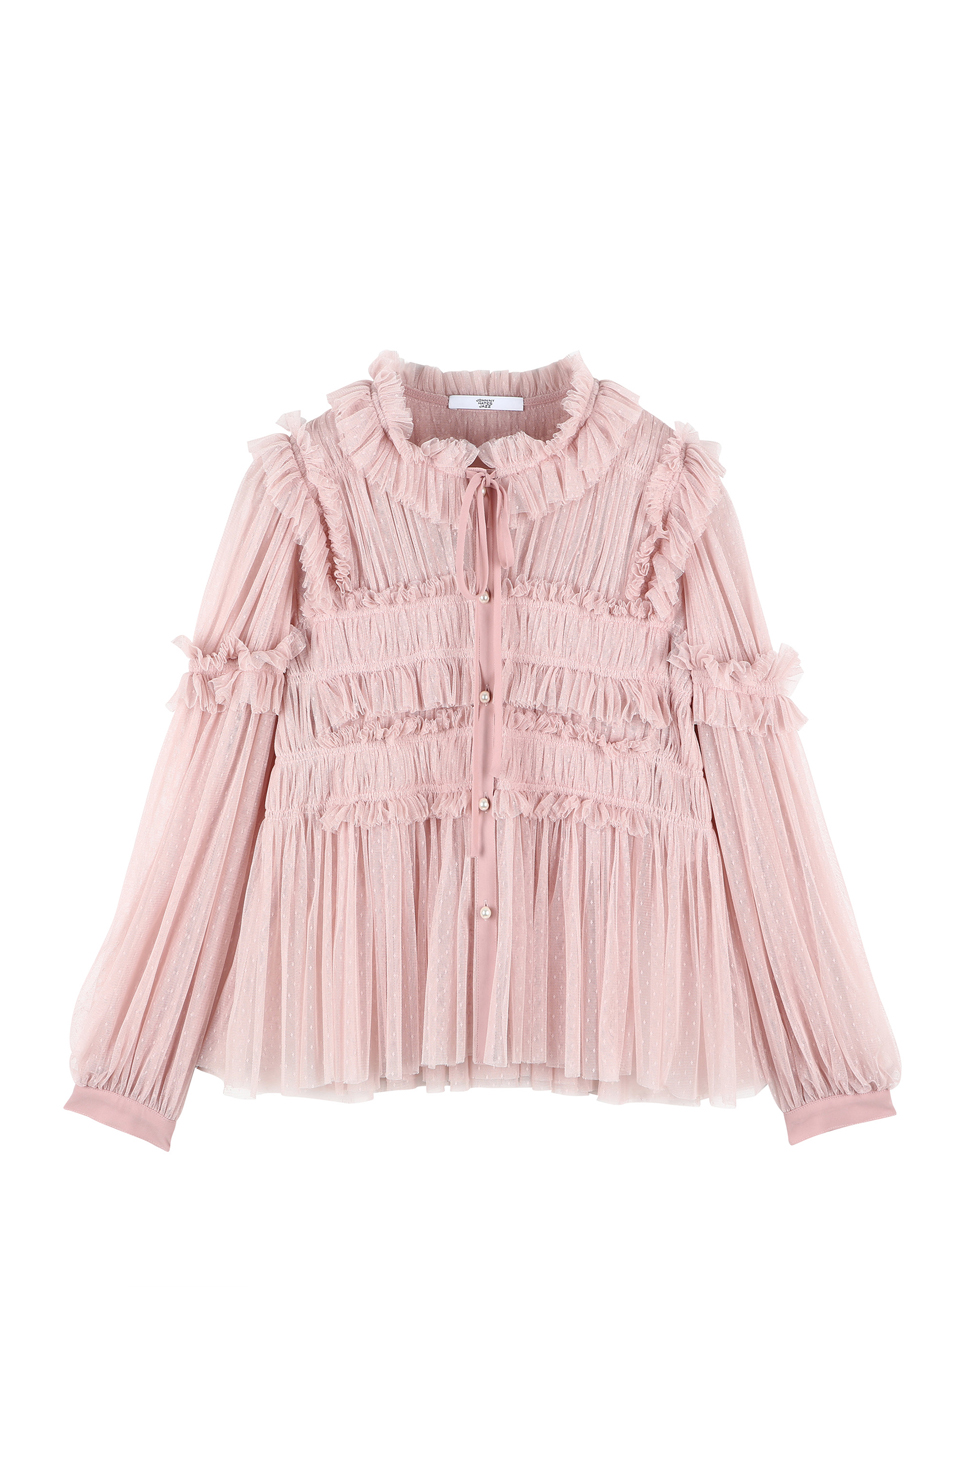 TULLE RUFFLE BLOUSE - PINK